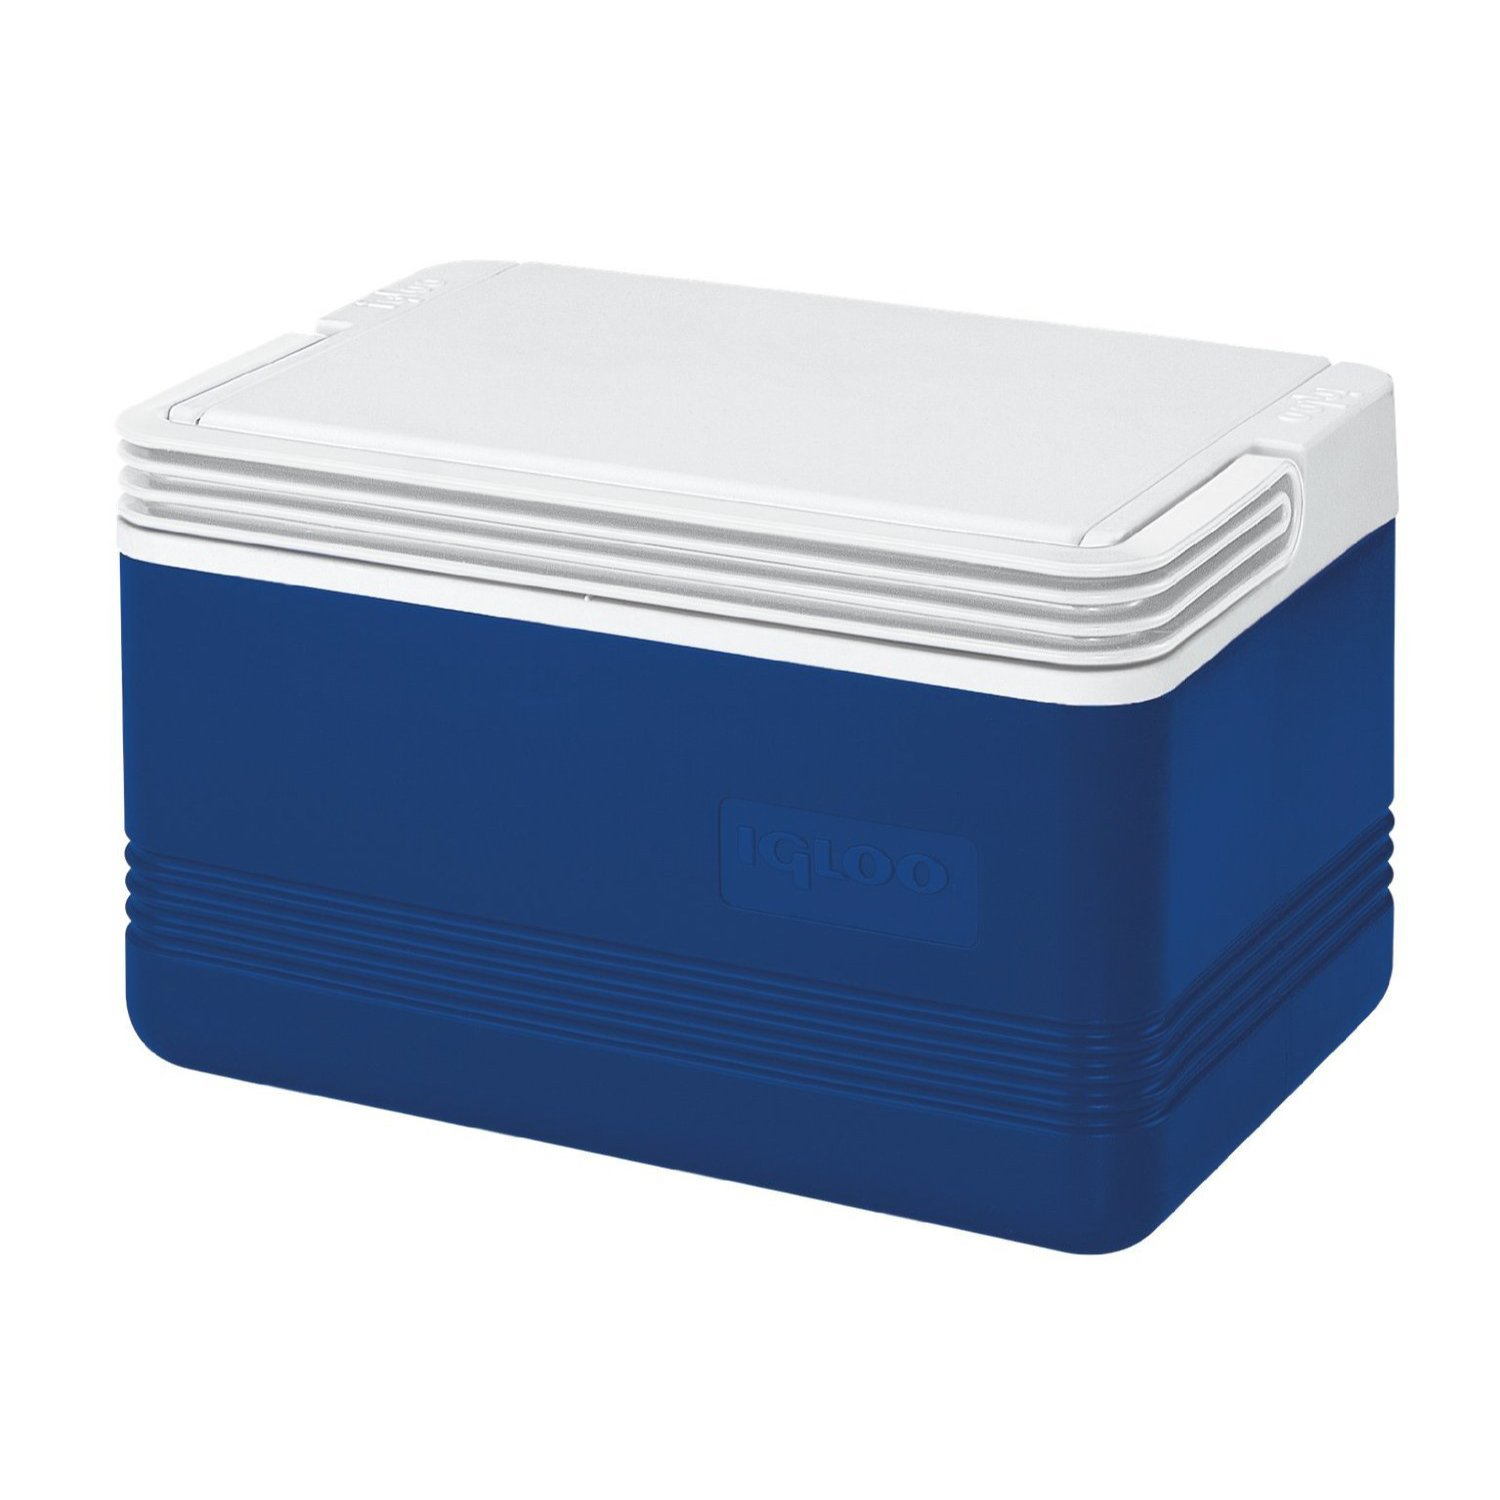 Igloo Corporation 43691 Legend 6, 6 Can Capacity, 5 Qt Cooler by Igloo (Image #1)